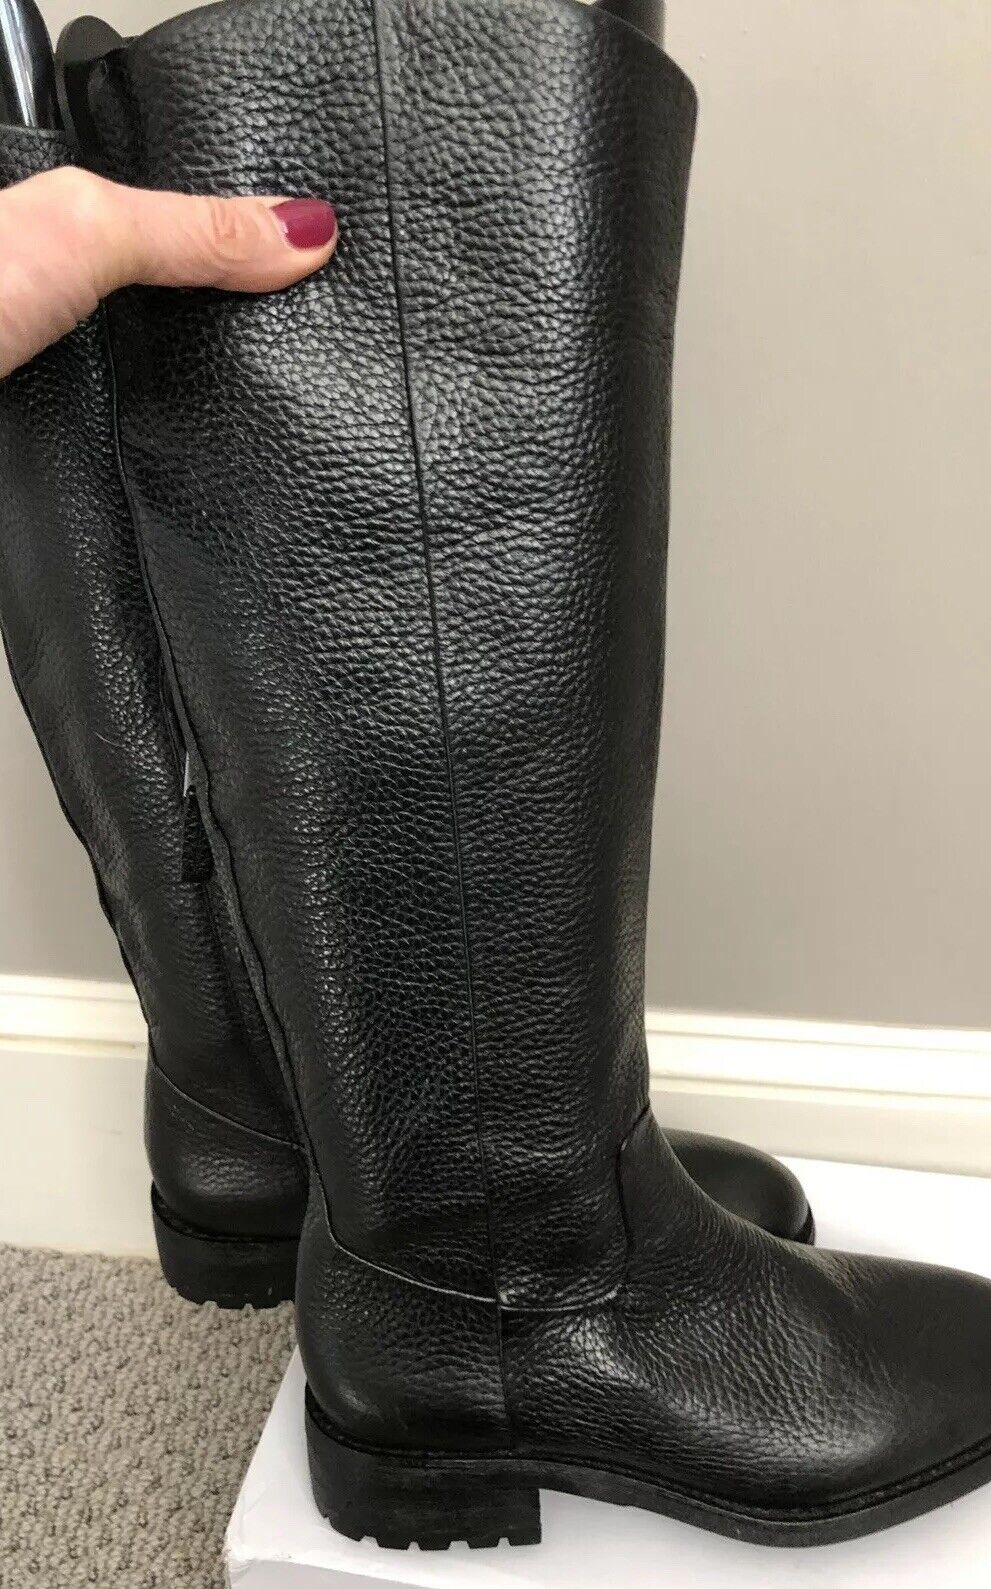 NWOB Black Ryan Leather Sam Edelman Boots side zipper sz 6